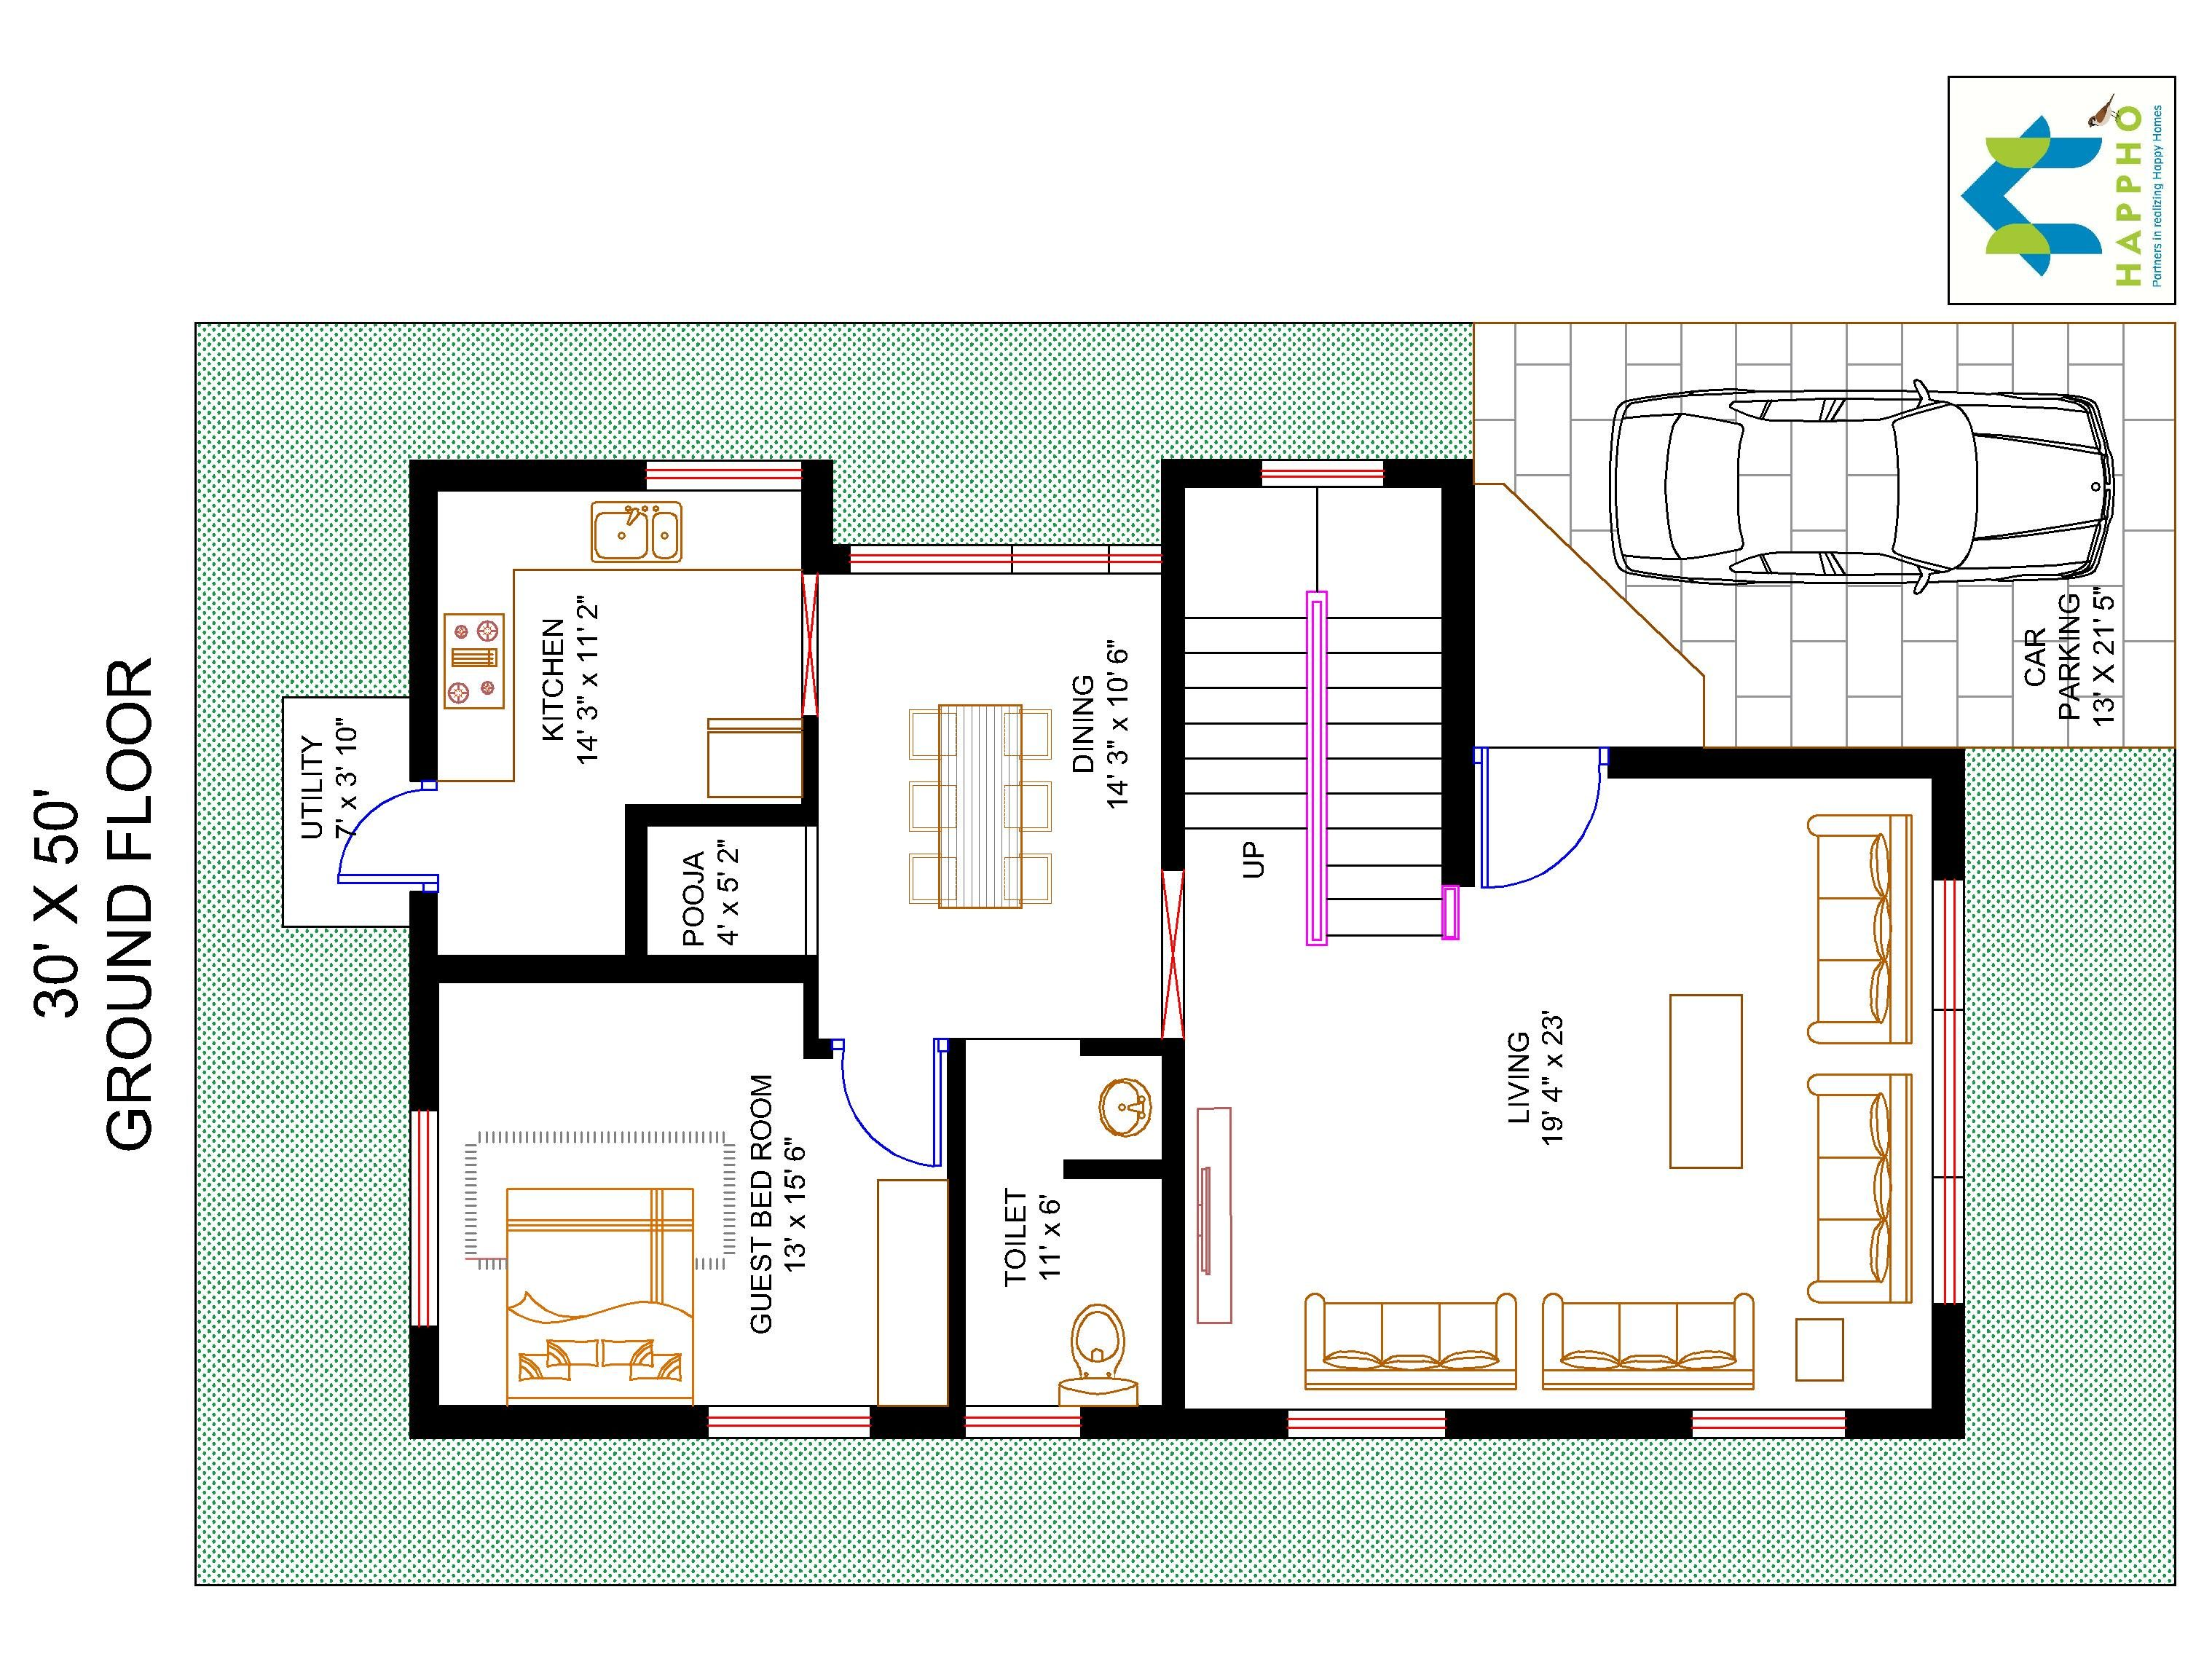 3 bhk floor plan for 30 x 50 plot 1500 square feet 166